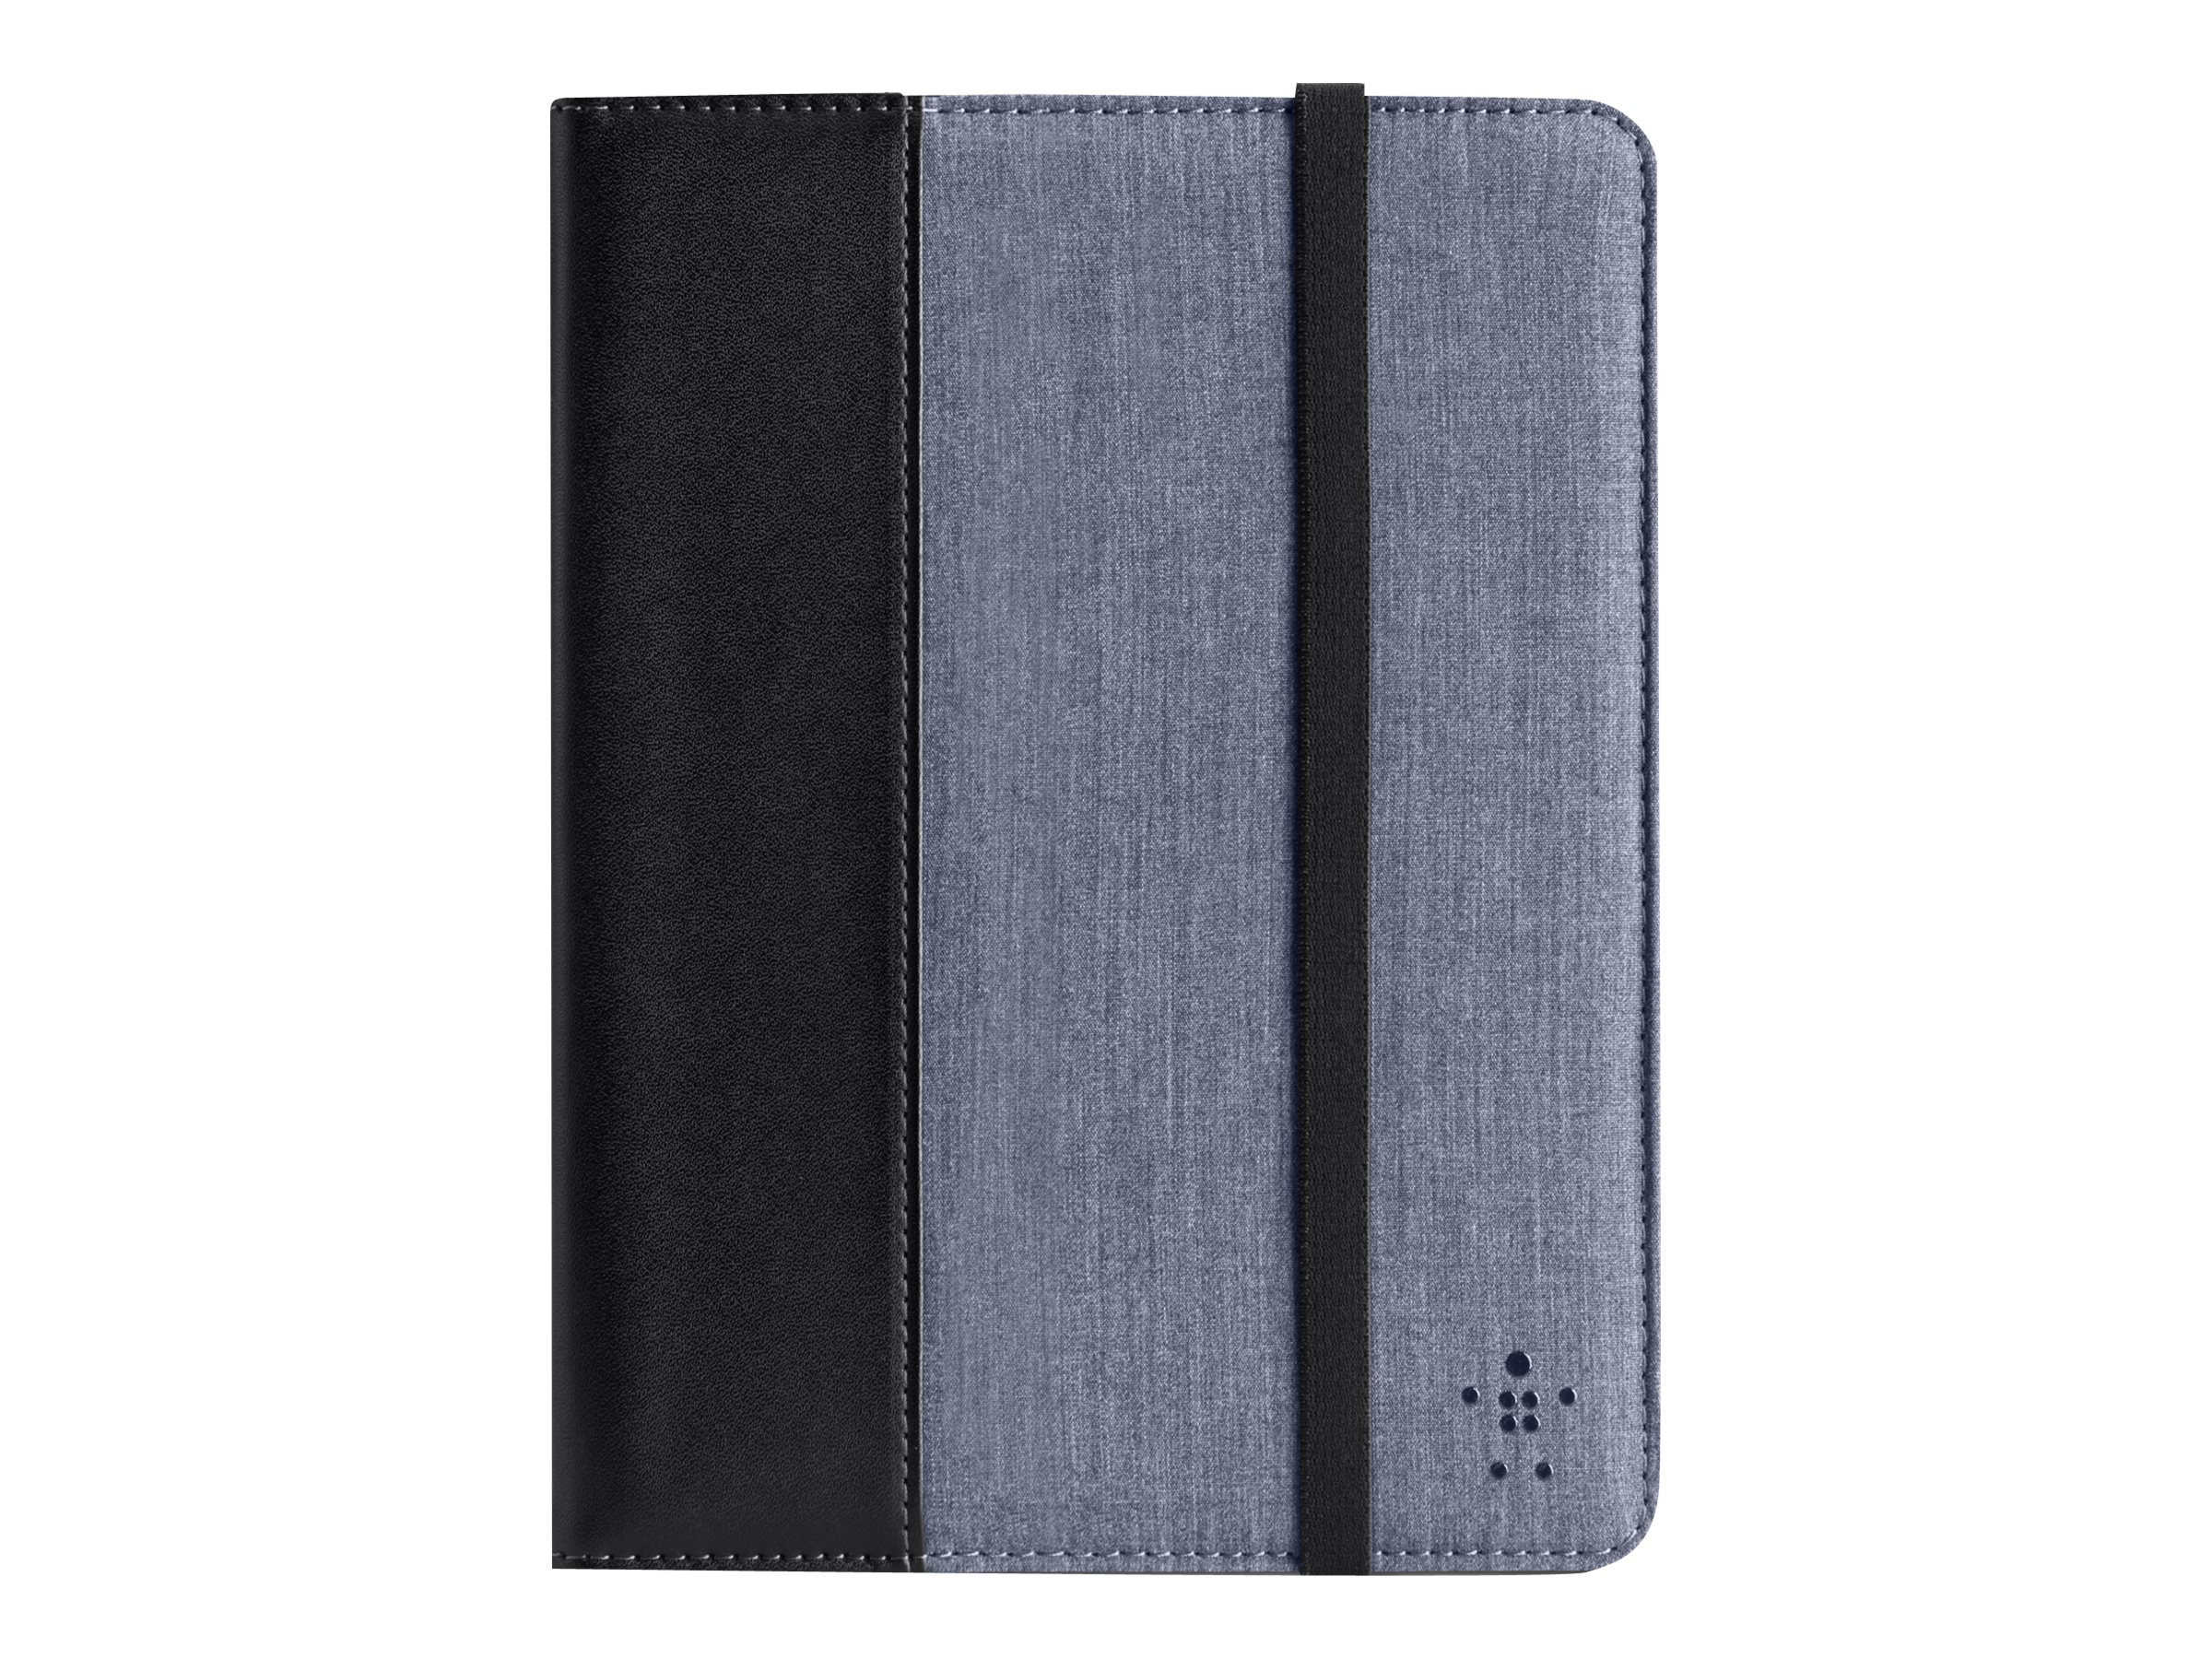 Belkin Chambray Cover with Stand for Kindle Fire HD 7, Blacktop Blue